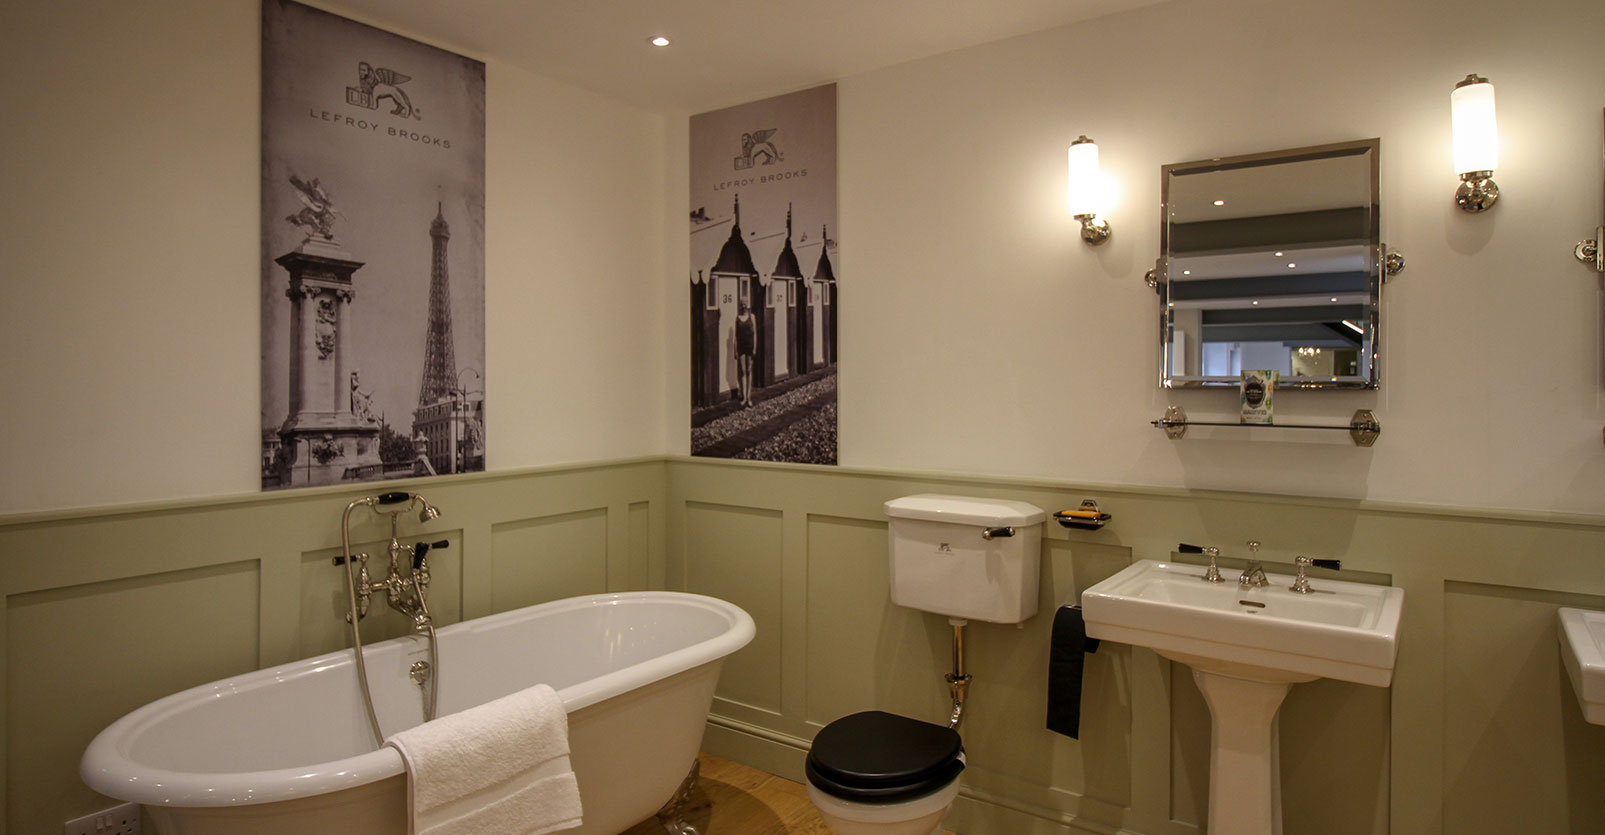 Aquatec Bathroom Suppliers in and around Wiltshire